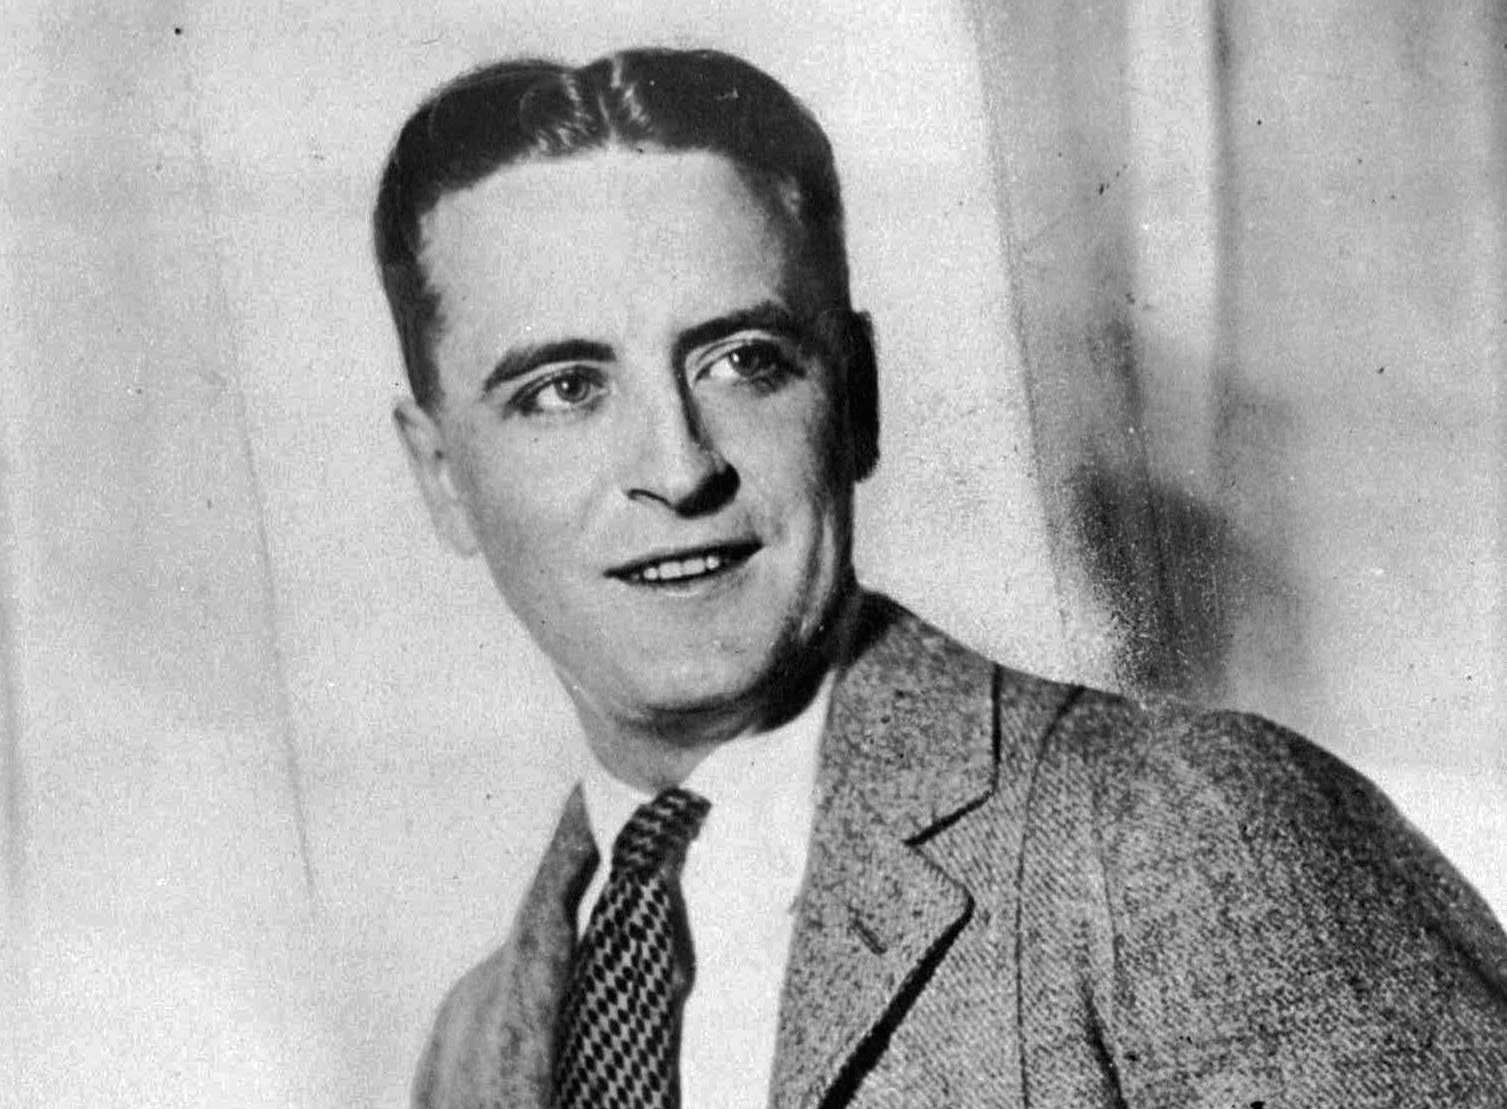 f scott fitzgerald a novelist who was catholic but not a  ap file photo